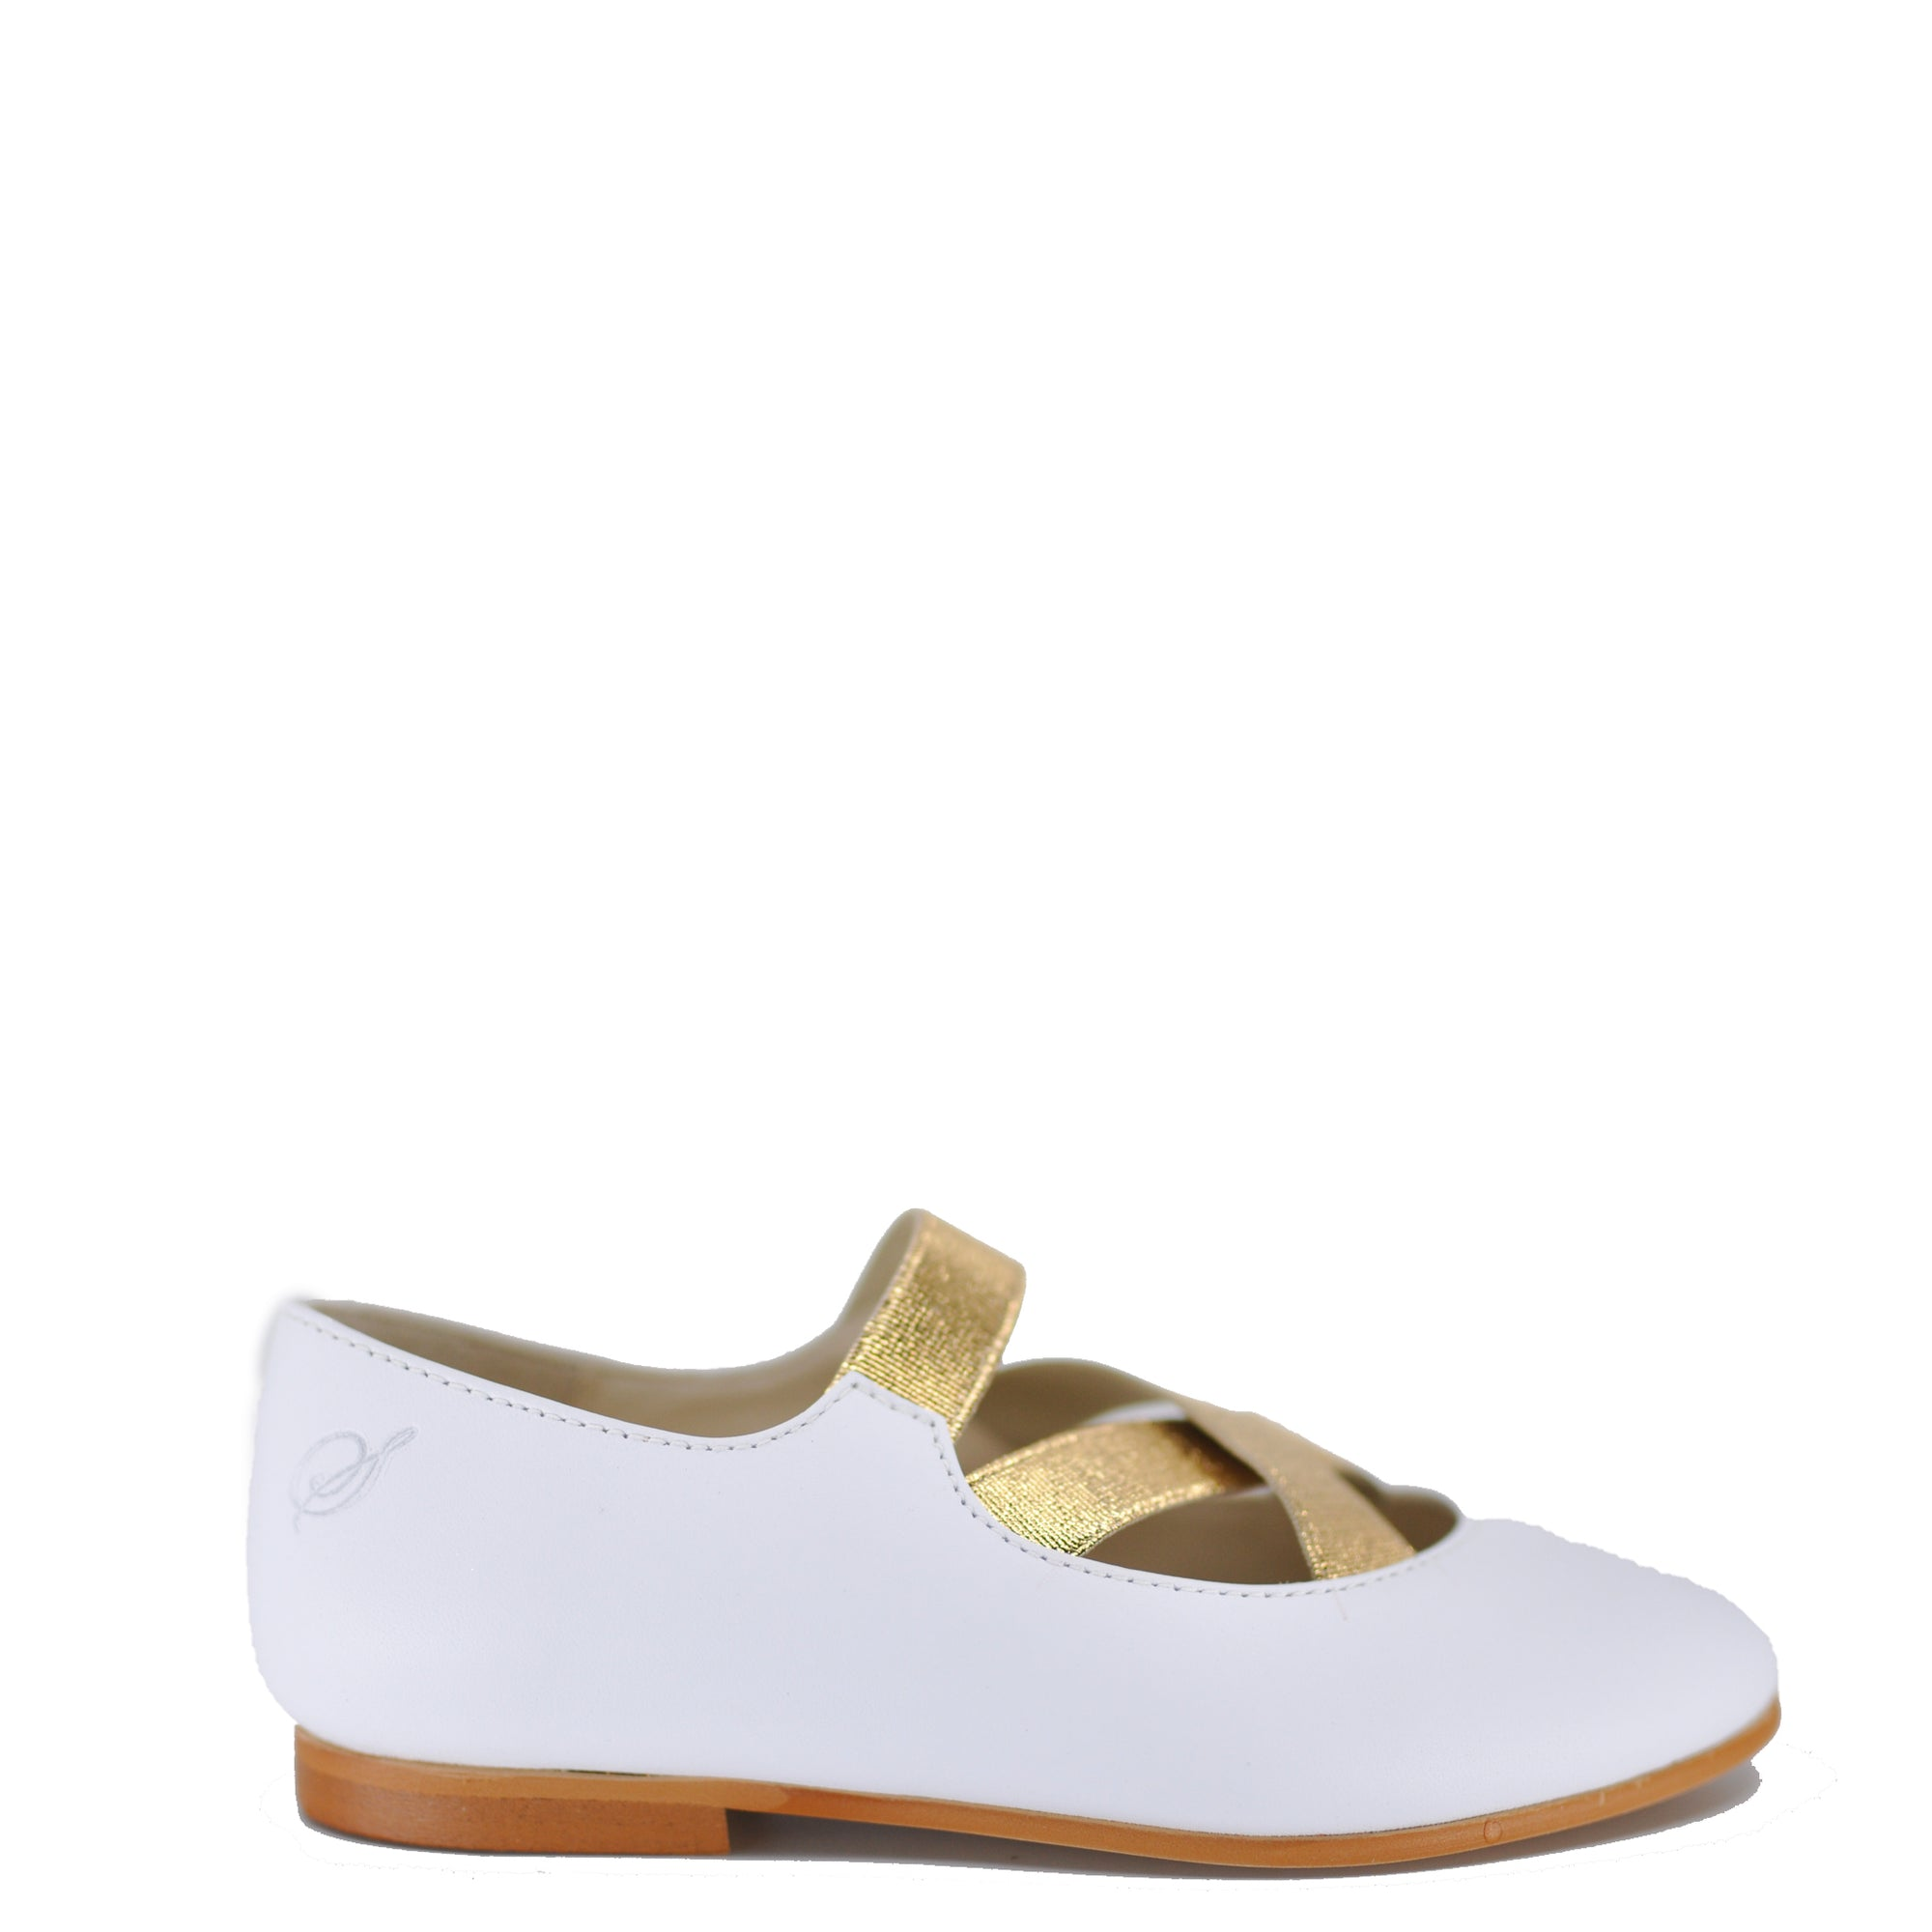 Sonatina White and Gold Criss Cross Ballet Shoe-Tassel Children Shoes